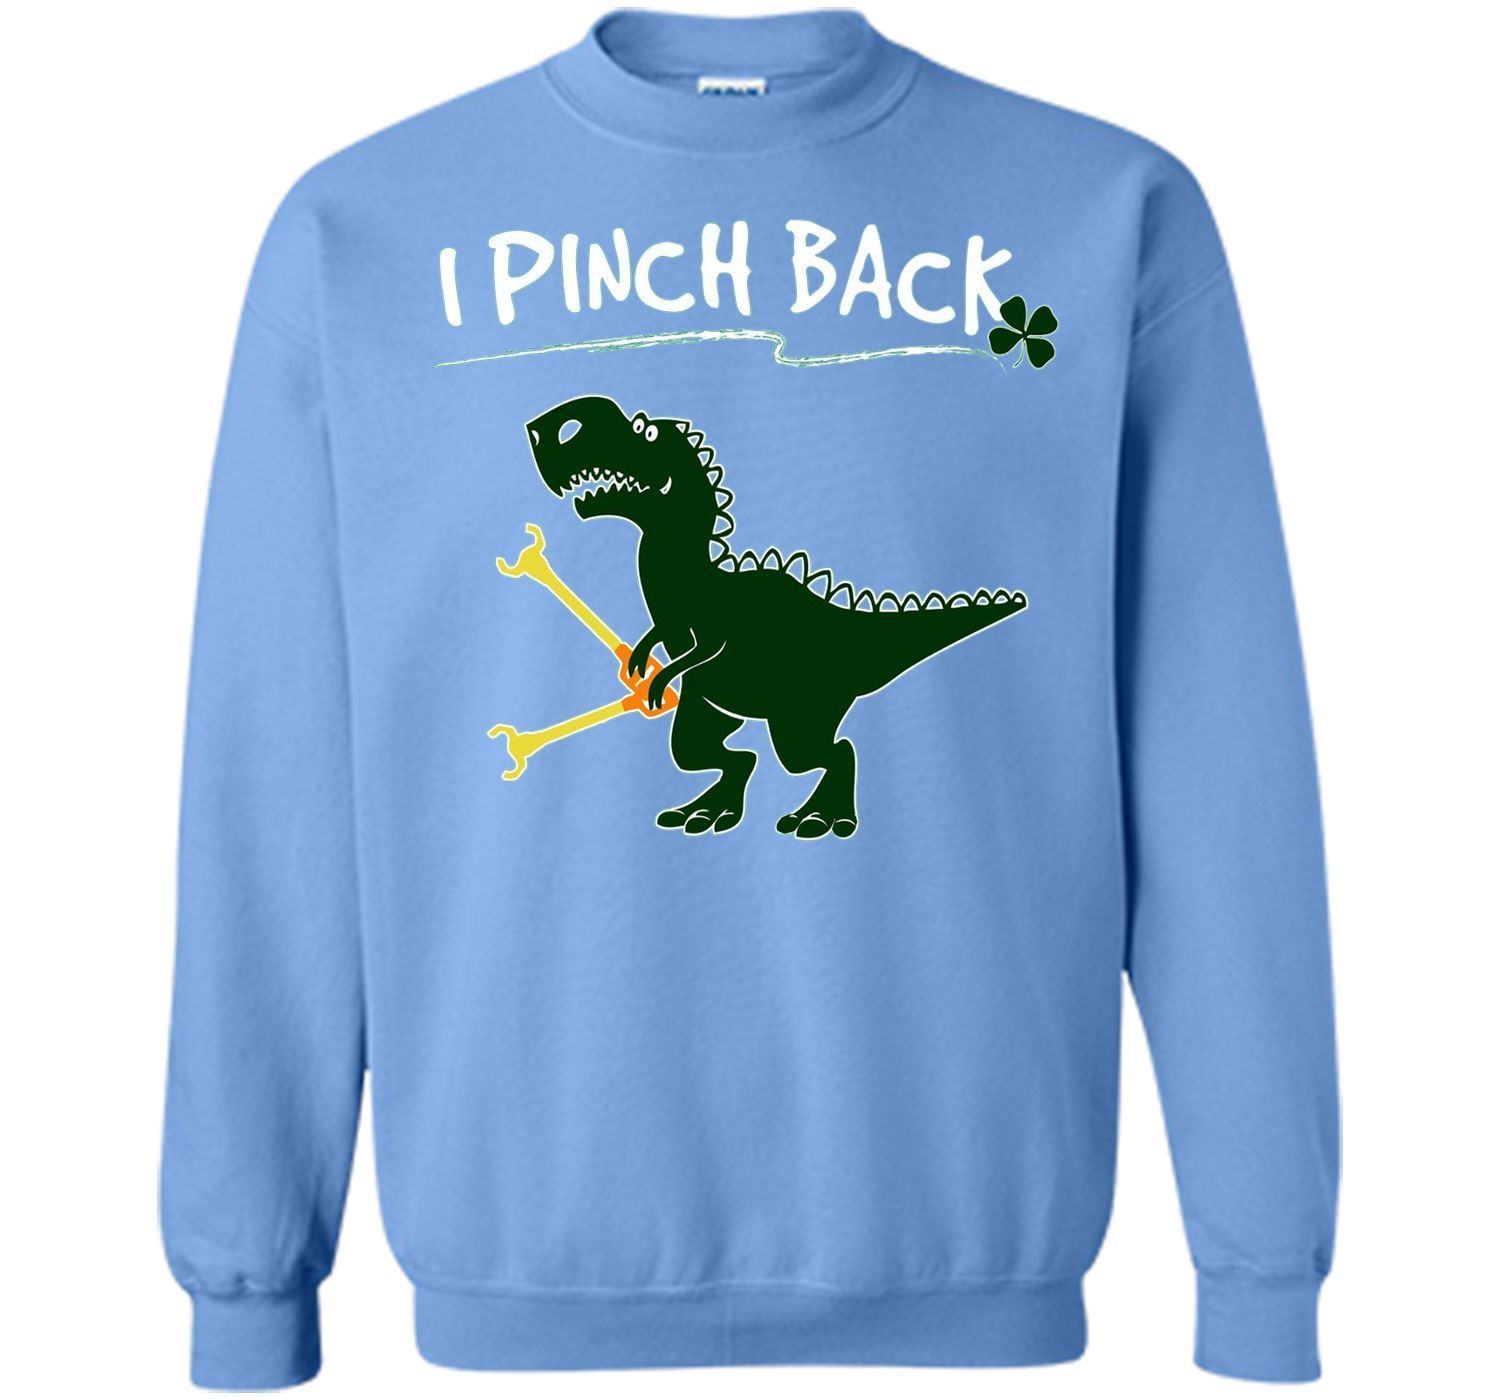 9c35b5ea I Pinch Back Dinosaur Tshirt - Kids St Patricks Day Shirts | Products